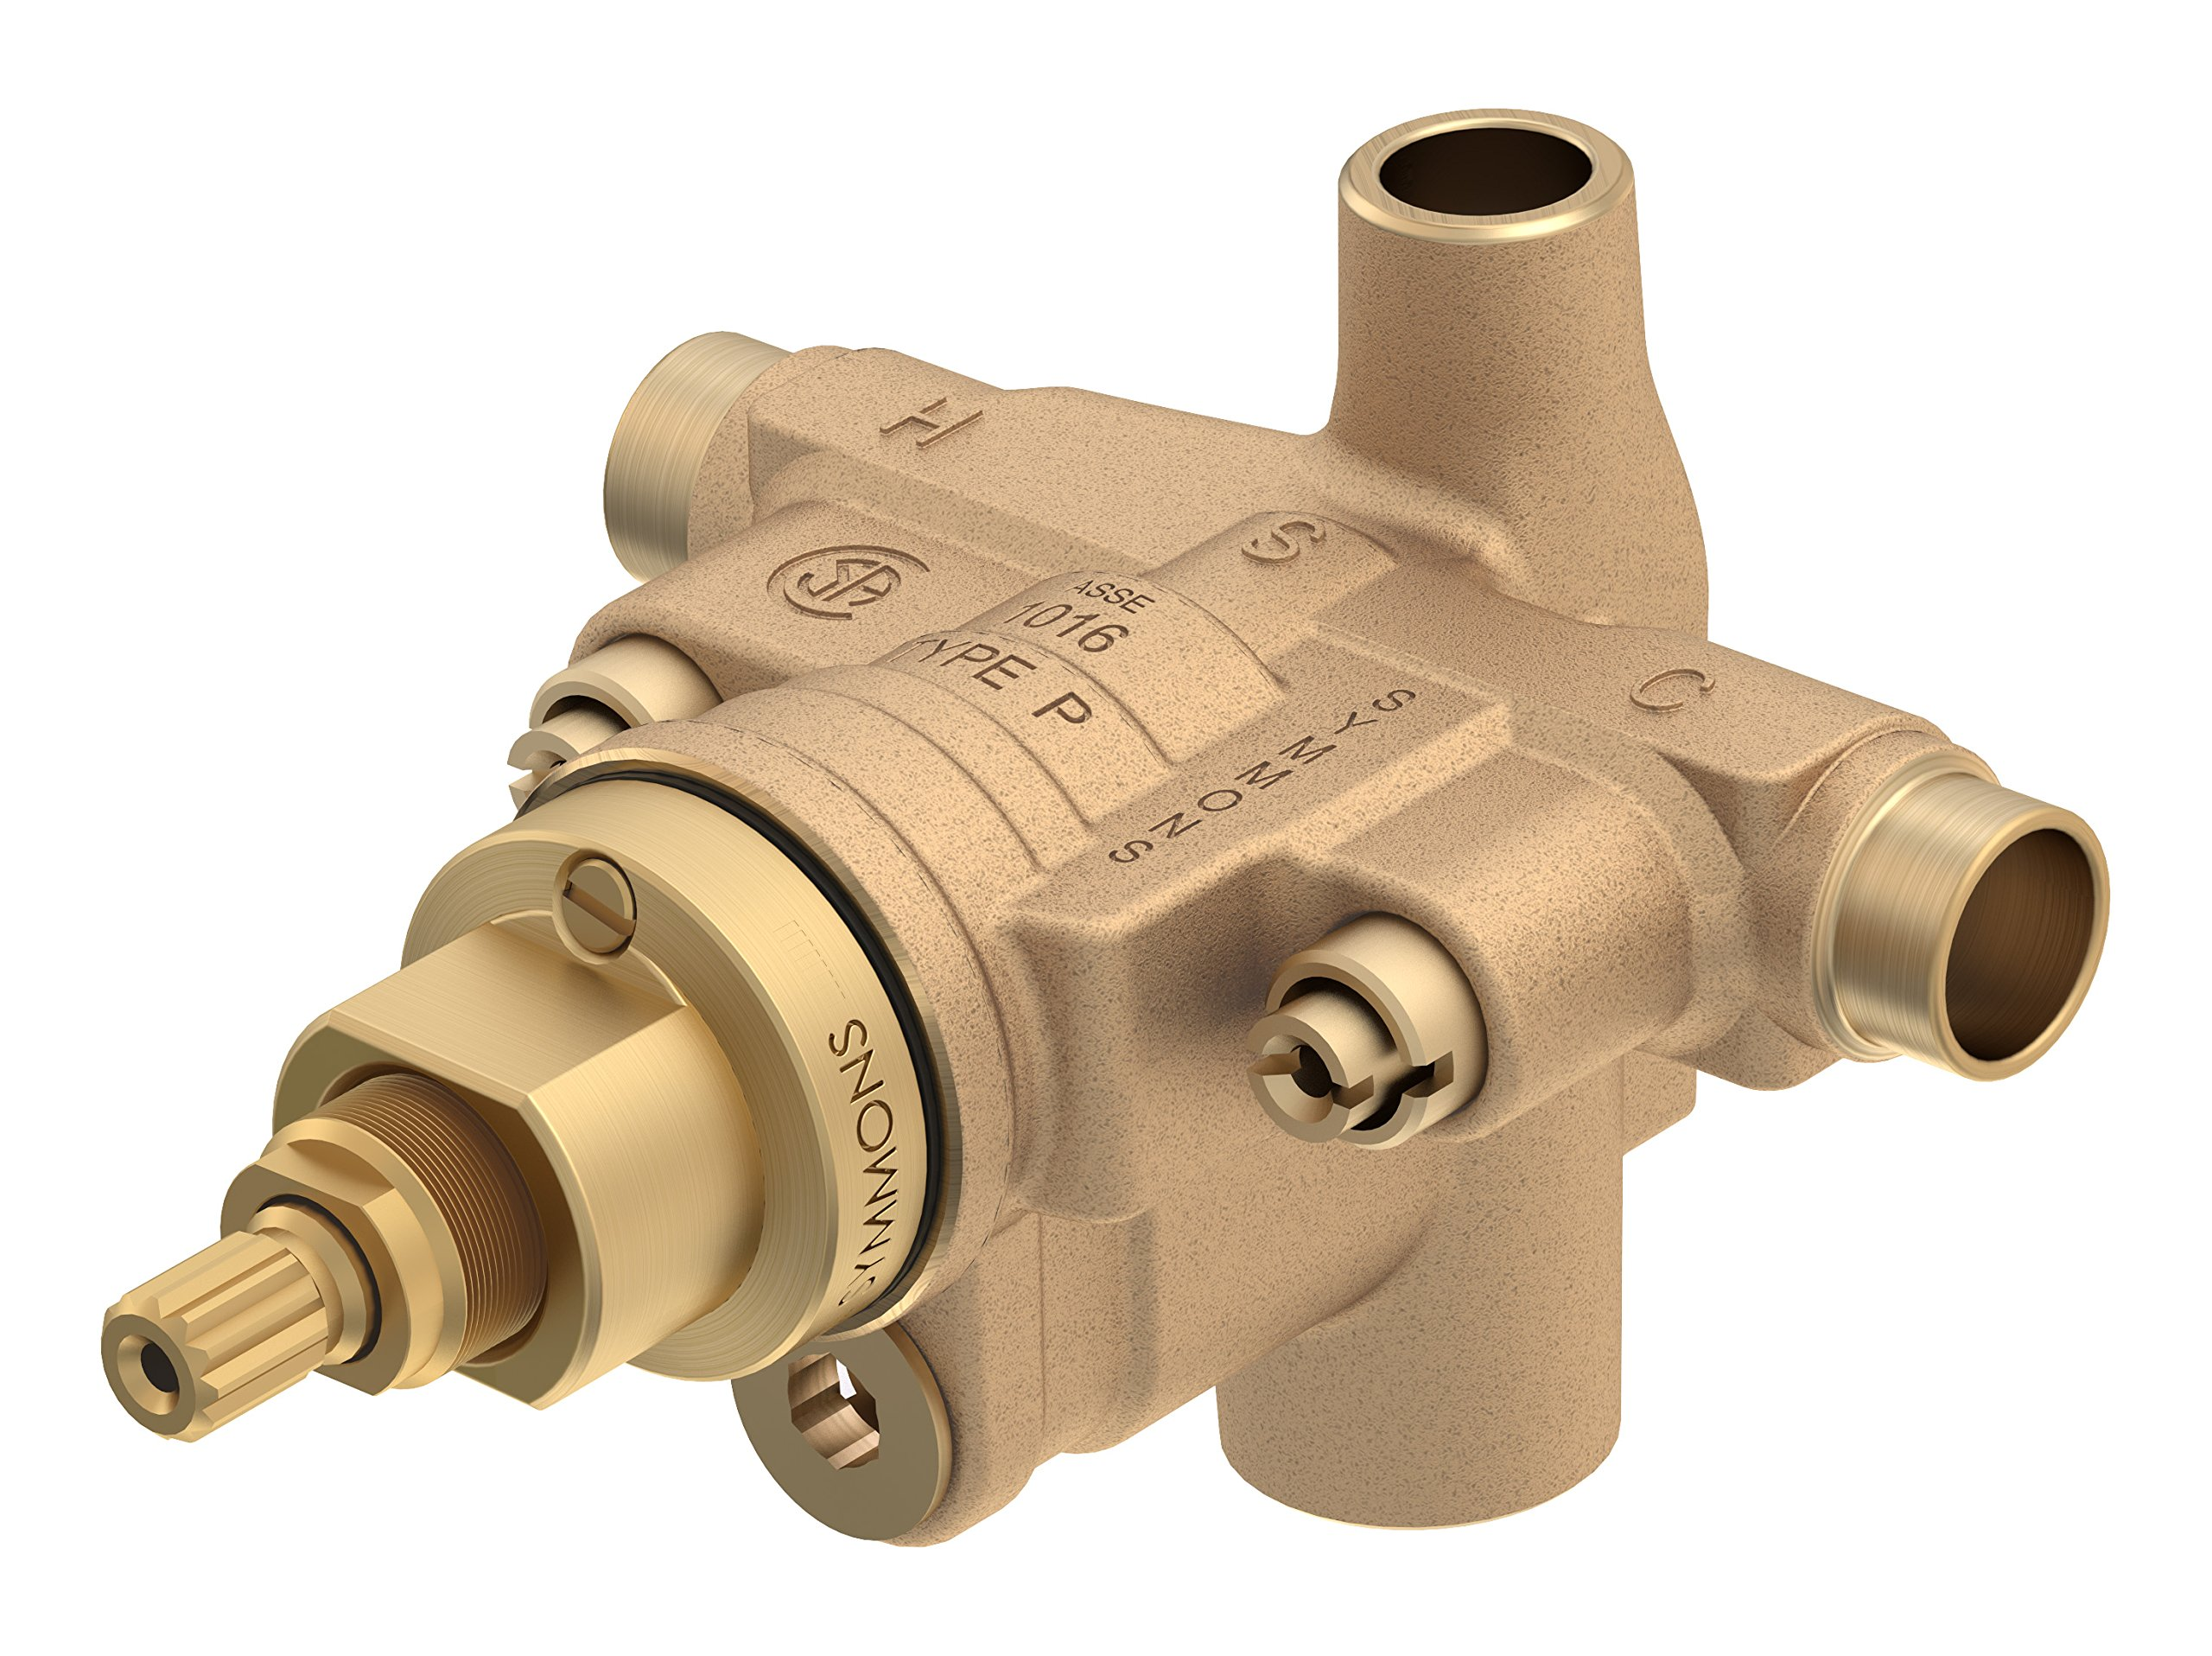 Symmons S-46-2X-BODY Temptrol Brass Pressure-Balancing Tub and Shower Valve with Service Stops and Integral Diverter by Symmons